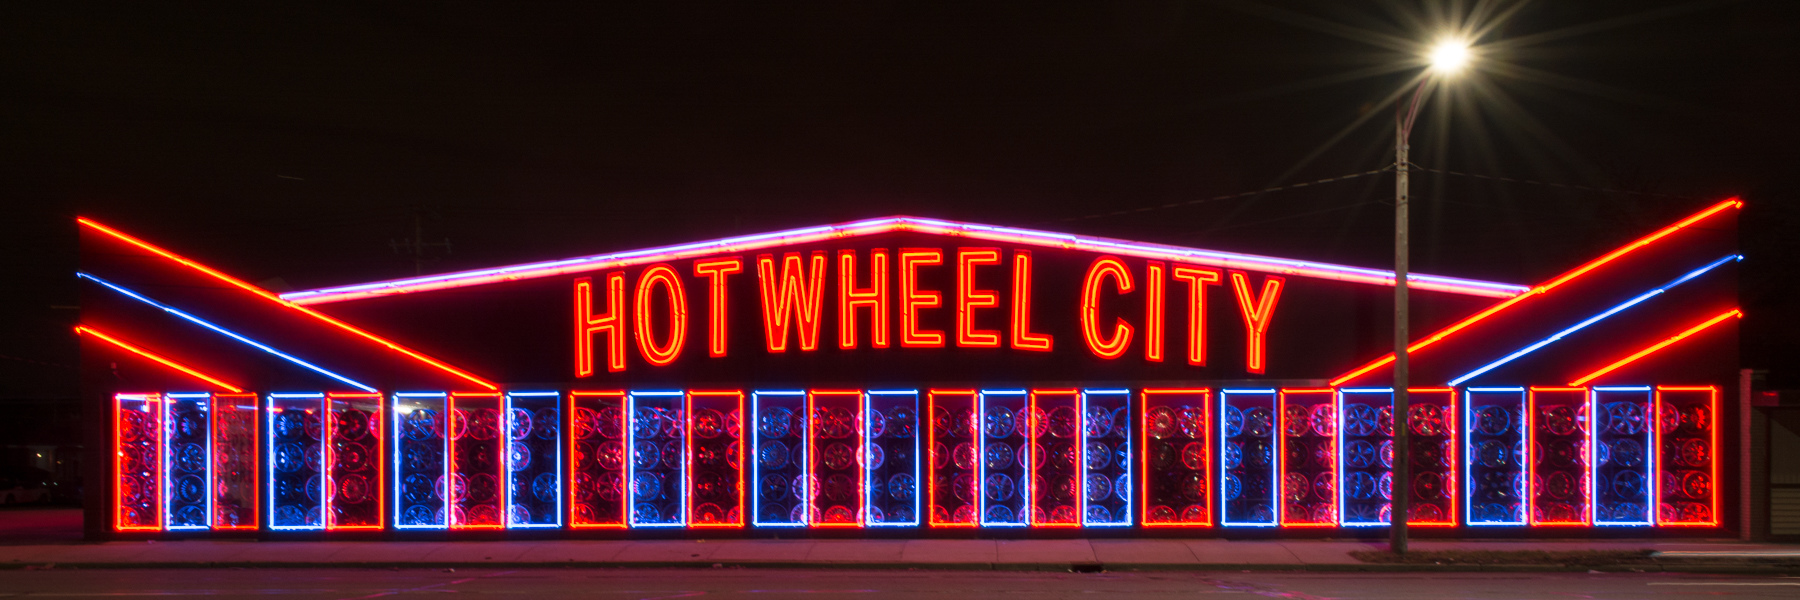 Neon Hot Wheel City No. 2b